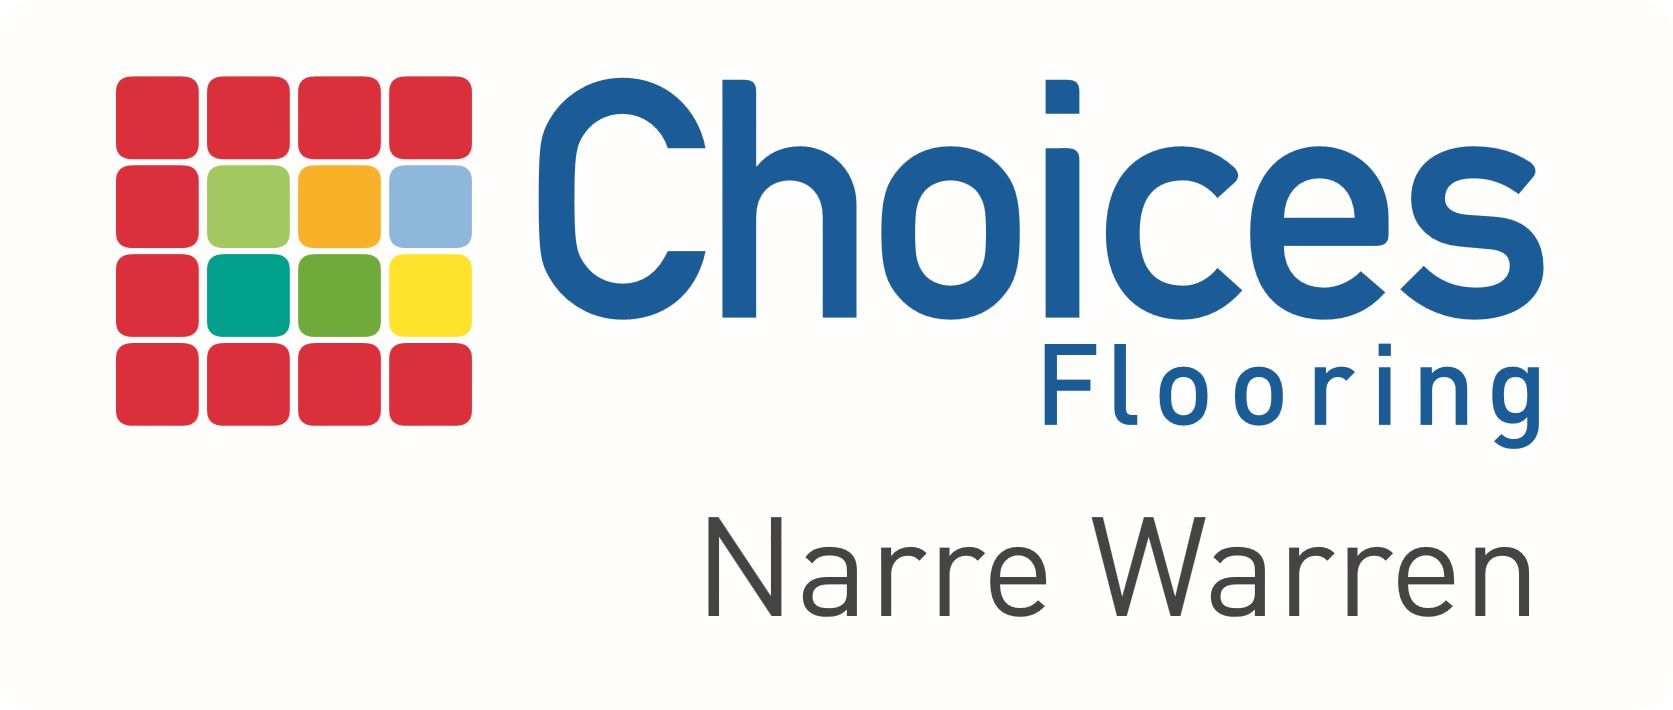 Choices Flooring Narre warren Logo